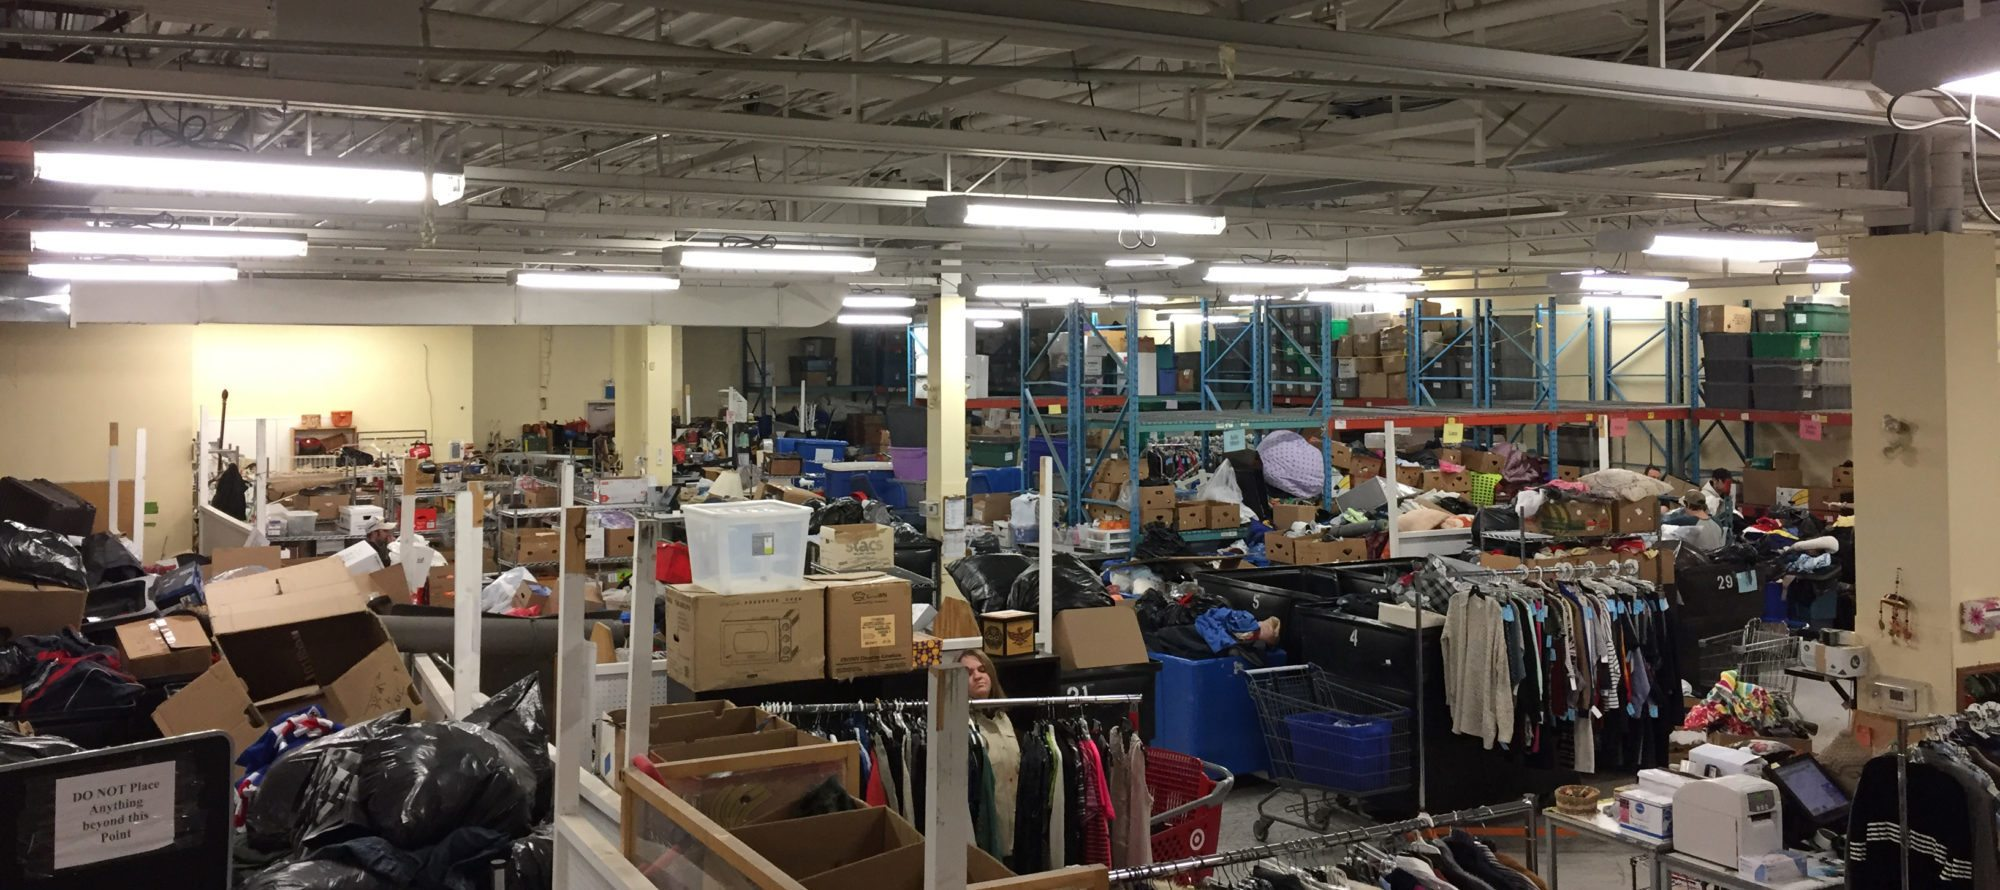 The Stories of Stuff: Touring St. Vinny's sorting centre